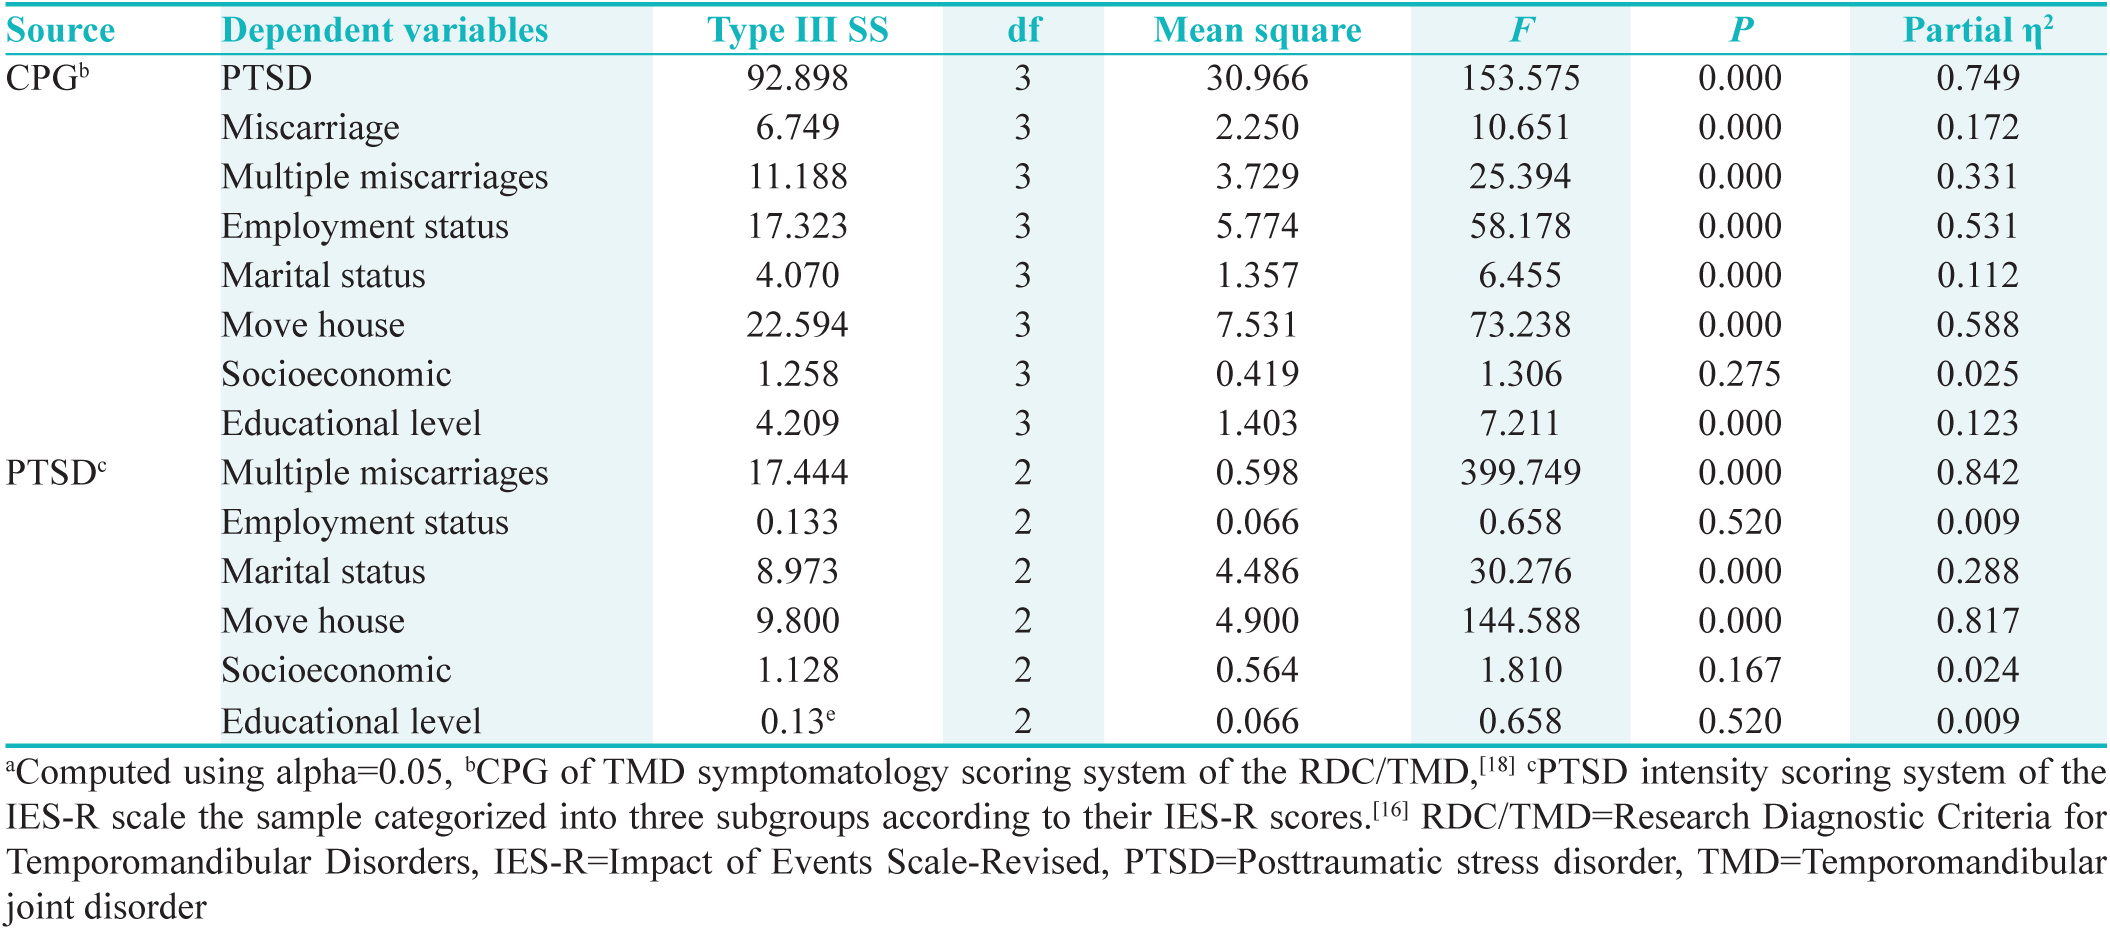 Table 4c: Test of participants' effects<sup>a</sup>